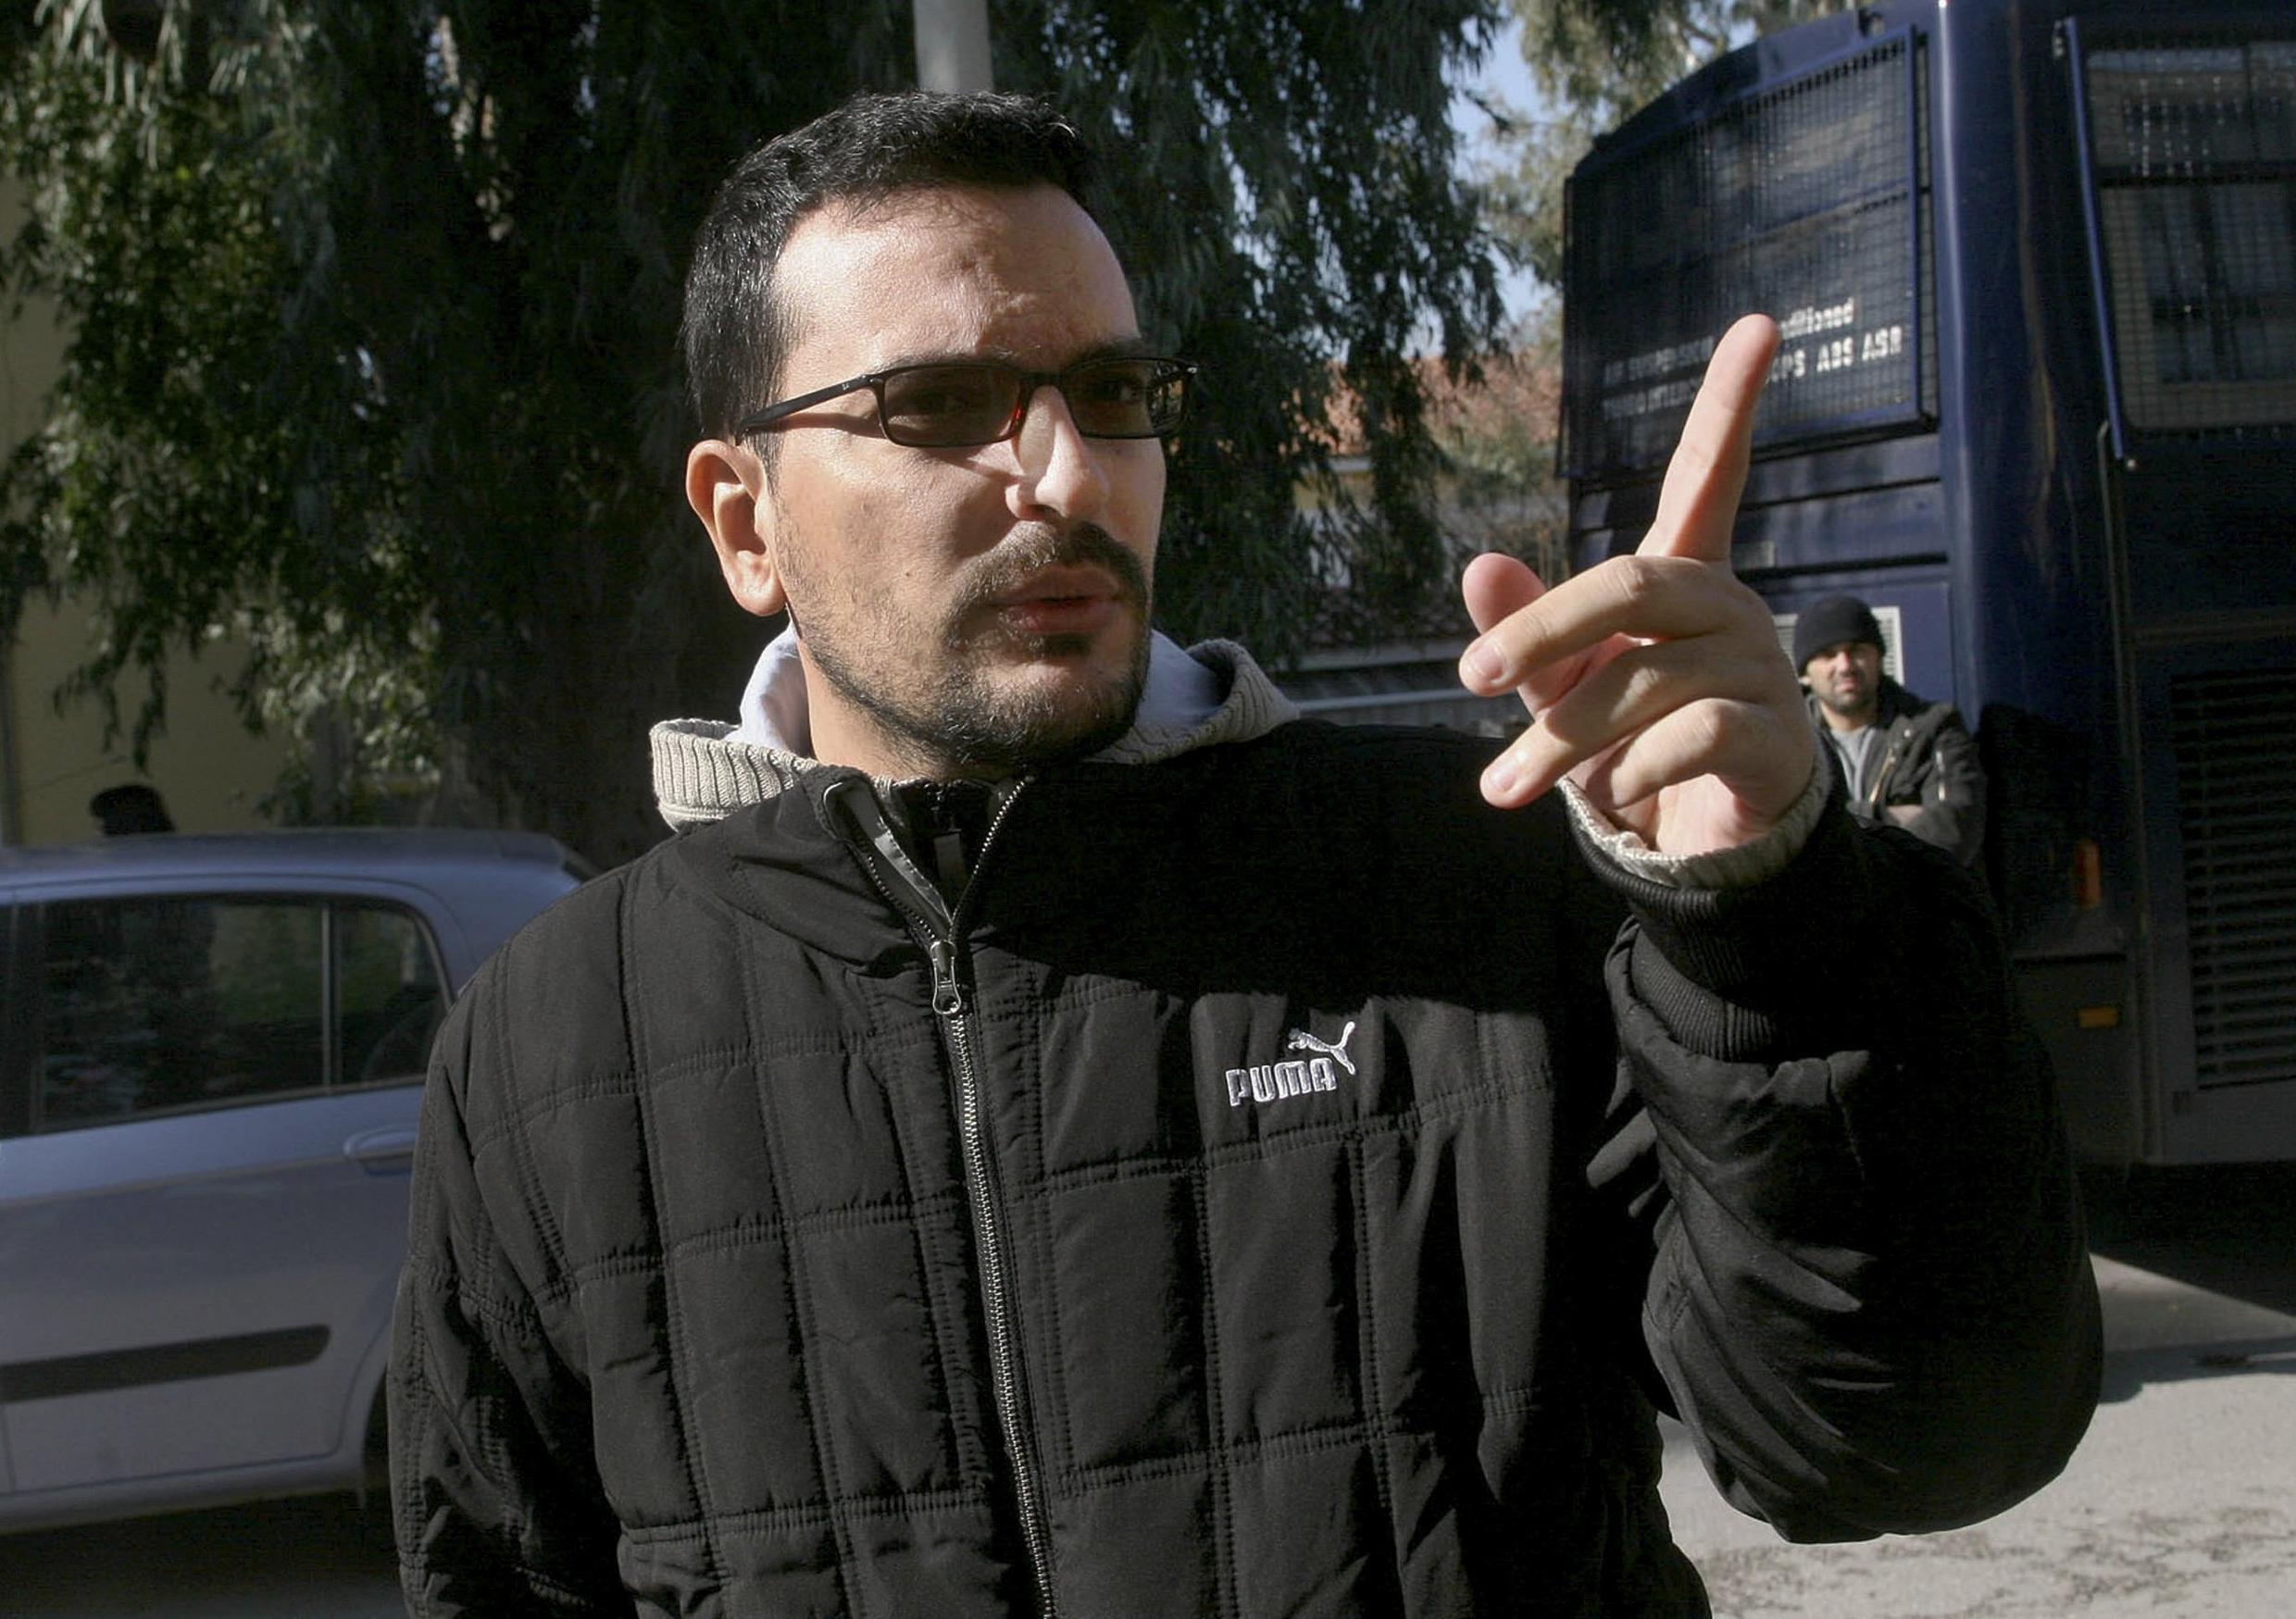 Journalist Socratis Guiolas gestures outside a courthouse in Athens in this undated file photo